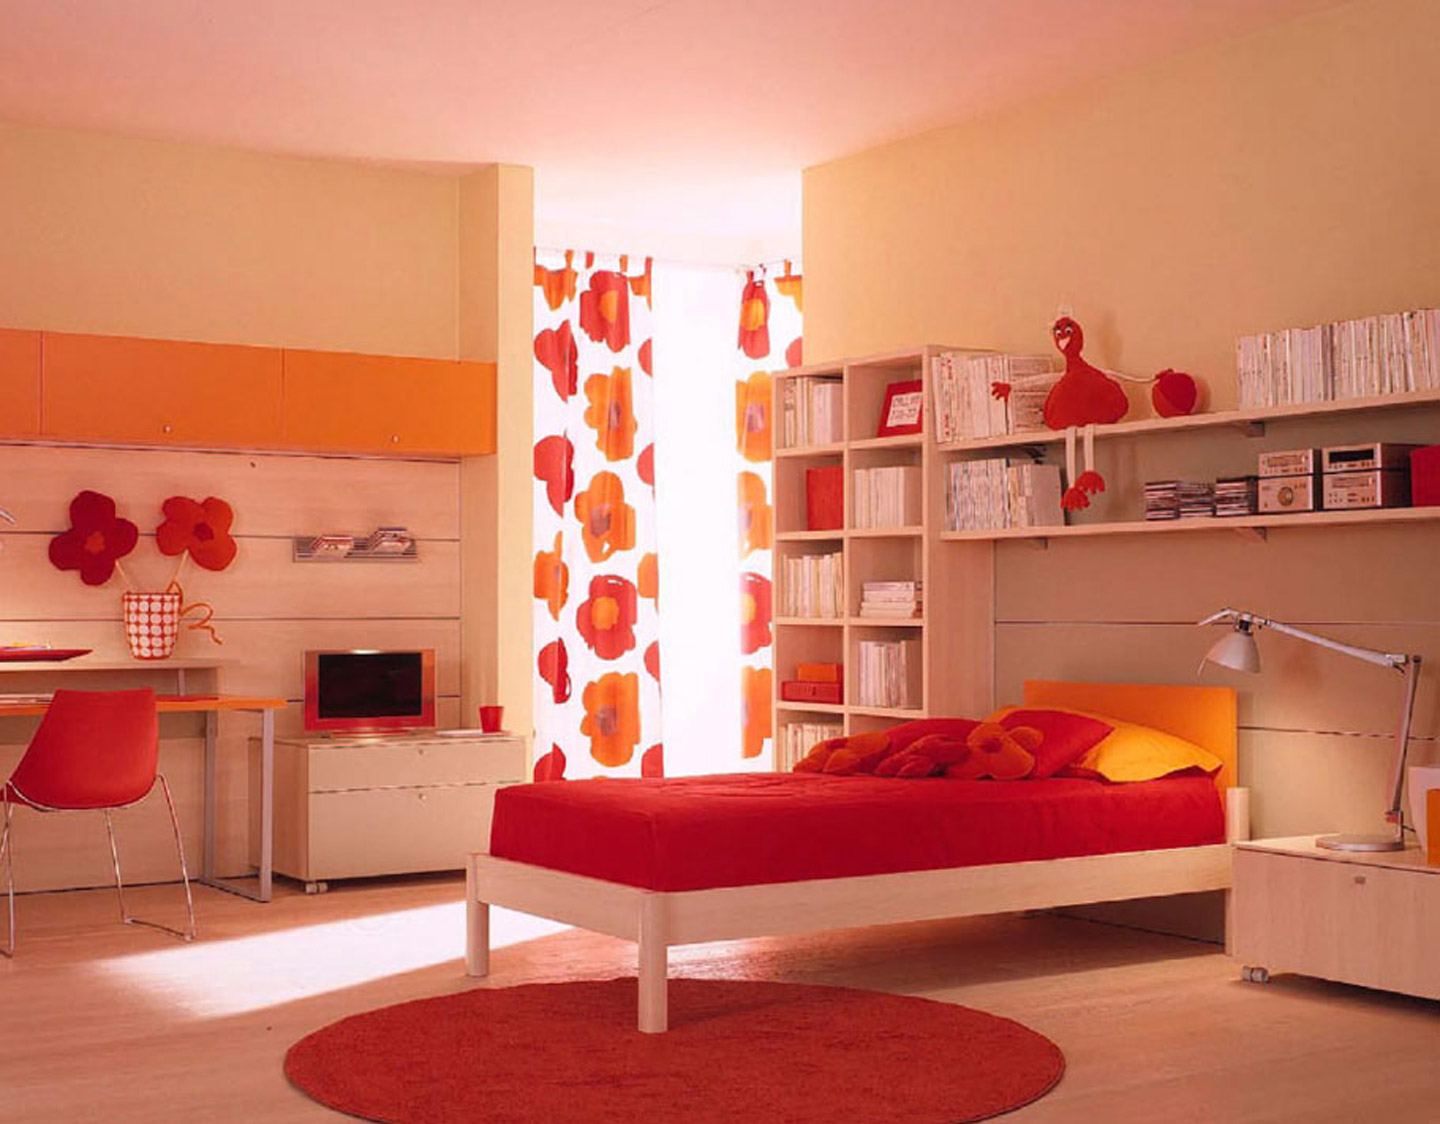 striking-red-ikea-childrens-bed-sheets-in-white-wooden-bedding-over-round-red-fur-rug-also-laminate-floor-and-white-wooden-cabinet